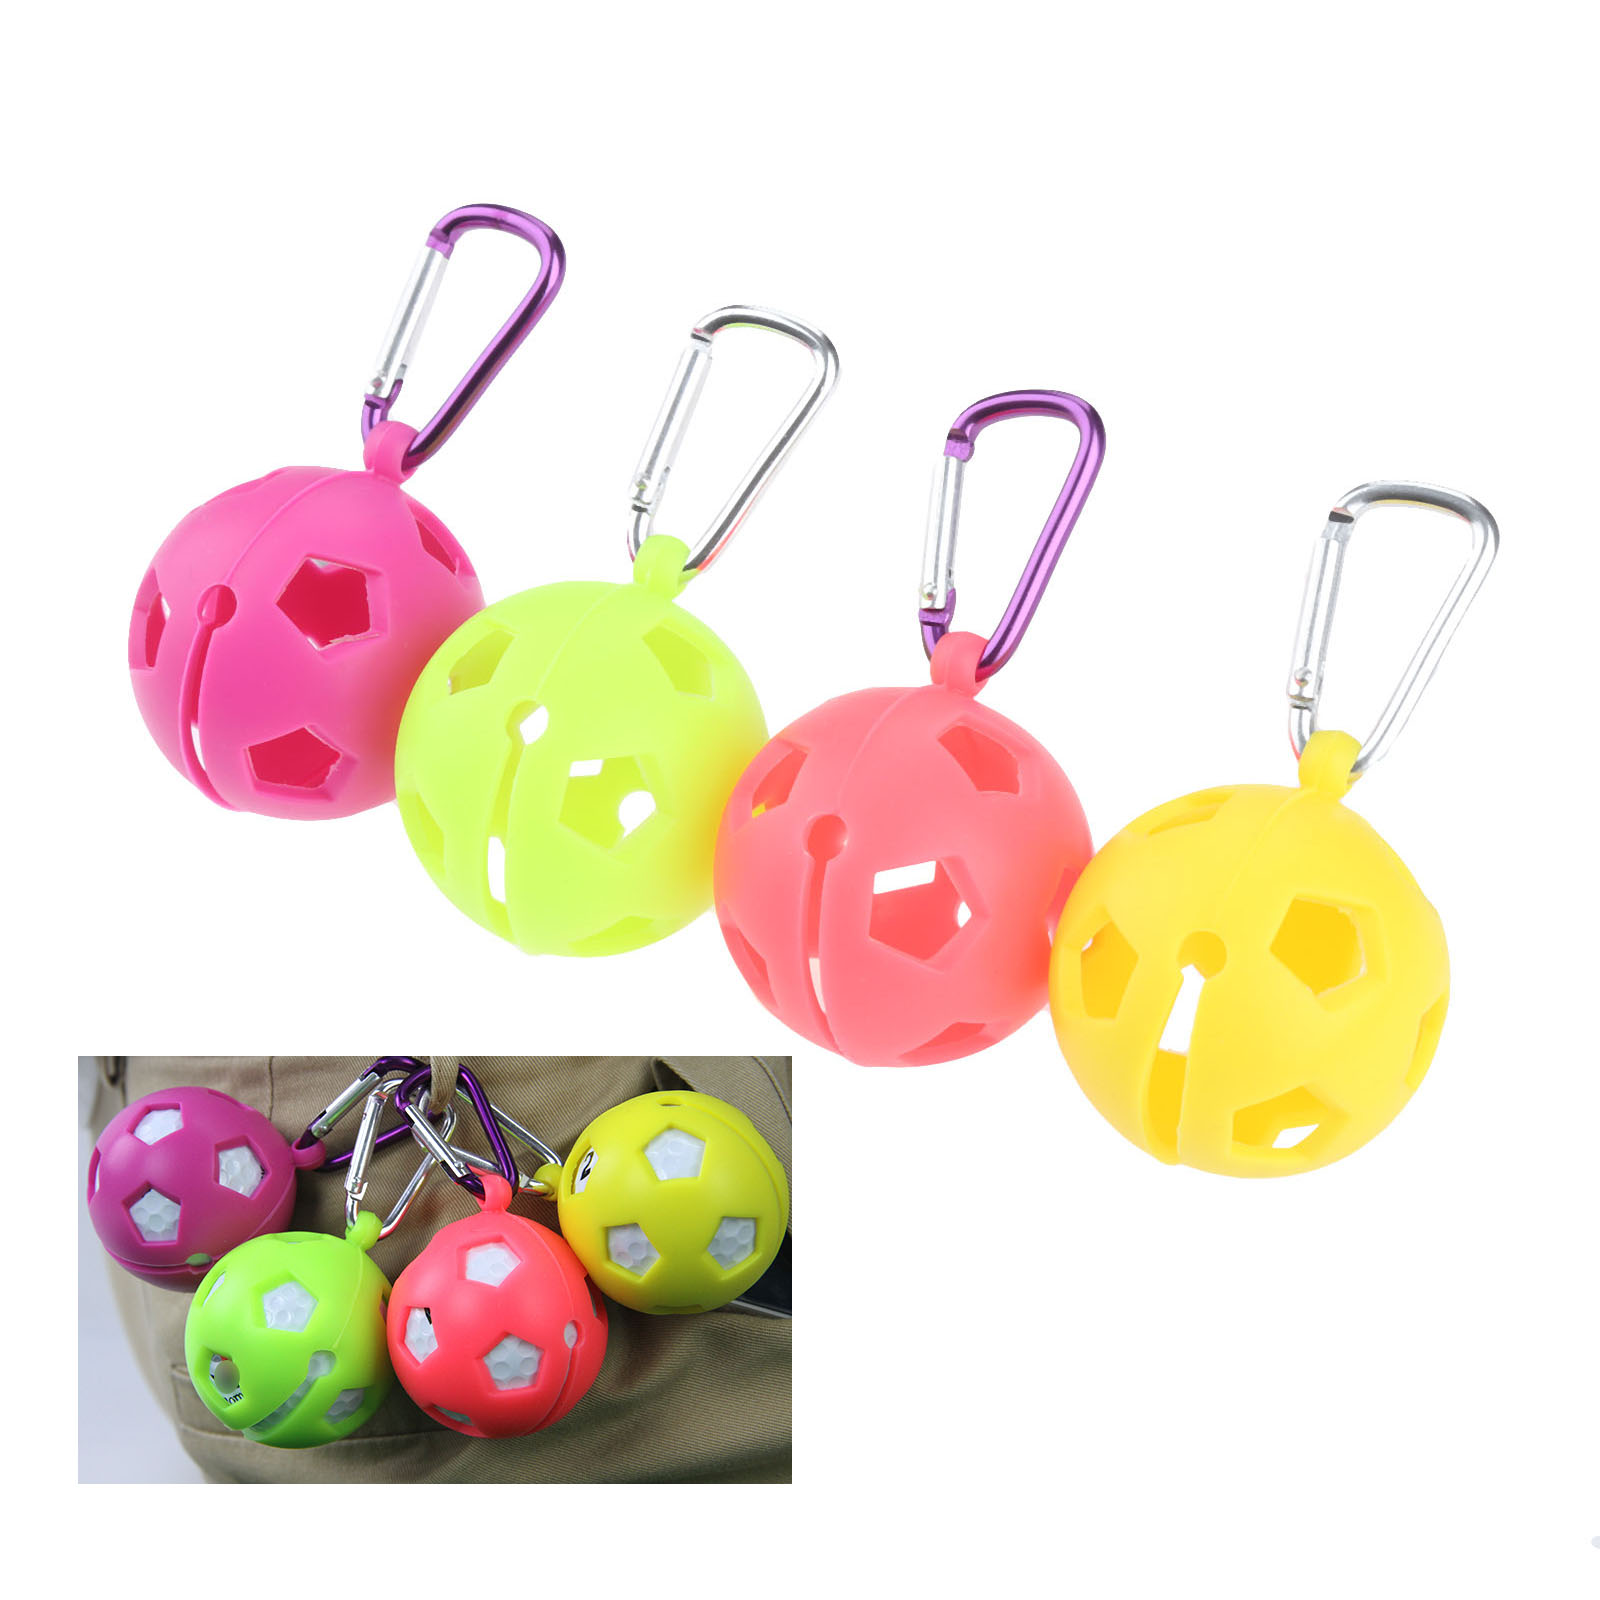 Portable Golf Ball Silicone Sleeve Protective Cover Bag Holder With Carabiner For 46mm 1 Ball Holder Golf Training Accessories